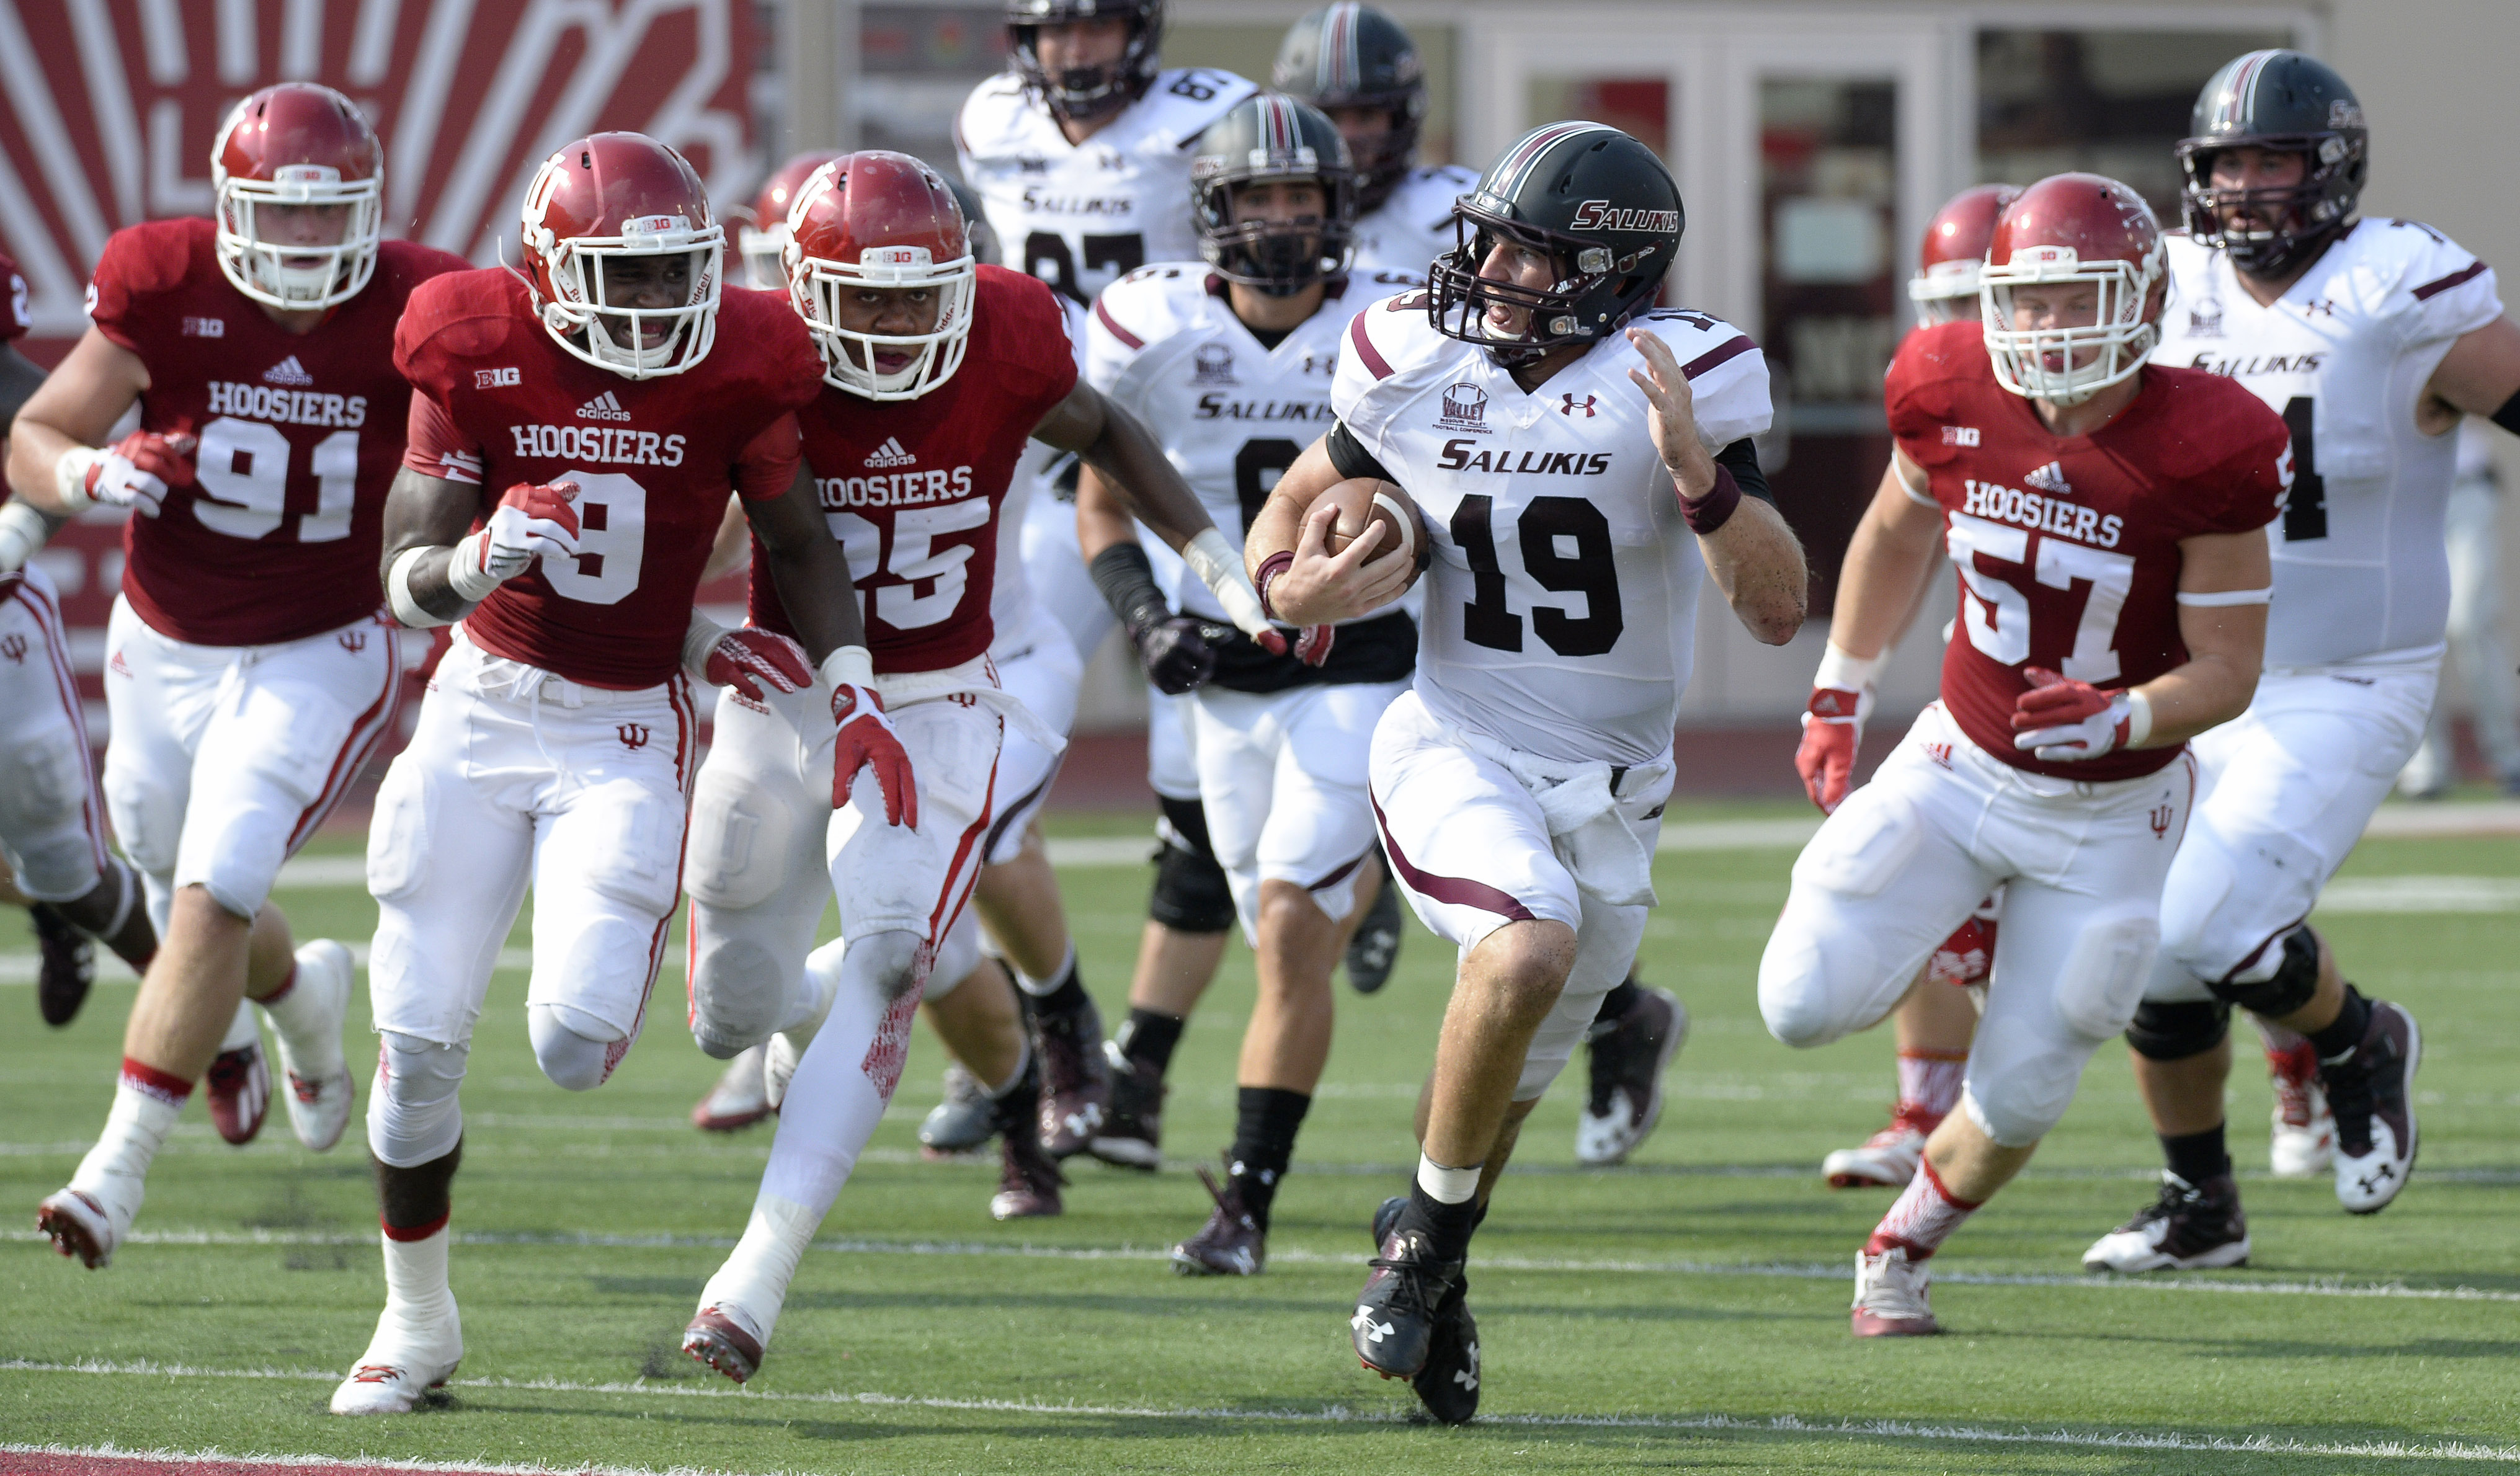 Southern Illinois quarterback Mark Iannotti (19) gets through the line during an NCAA college football game against Indiana, Saturday, Sept. 5, 2015, in Bloomington, Ind. (Chris Howell/The Herald-Times via AP) MANDATORY CREDIT